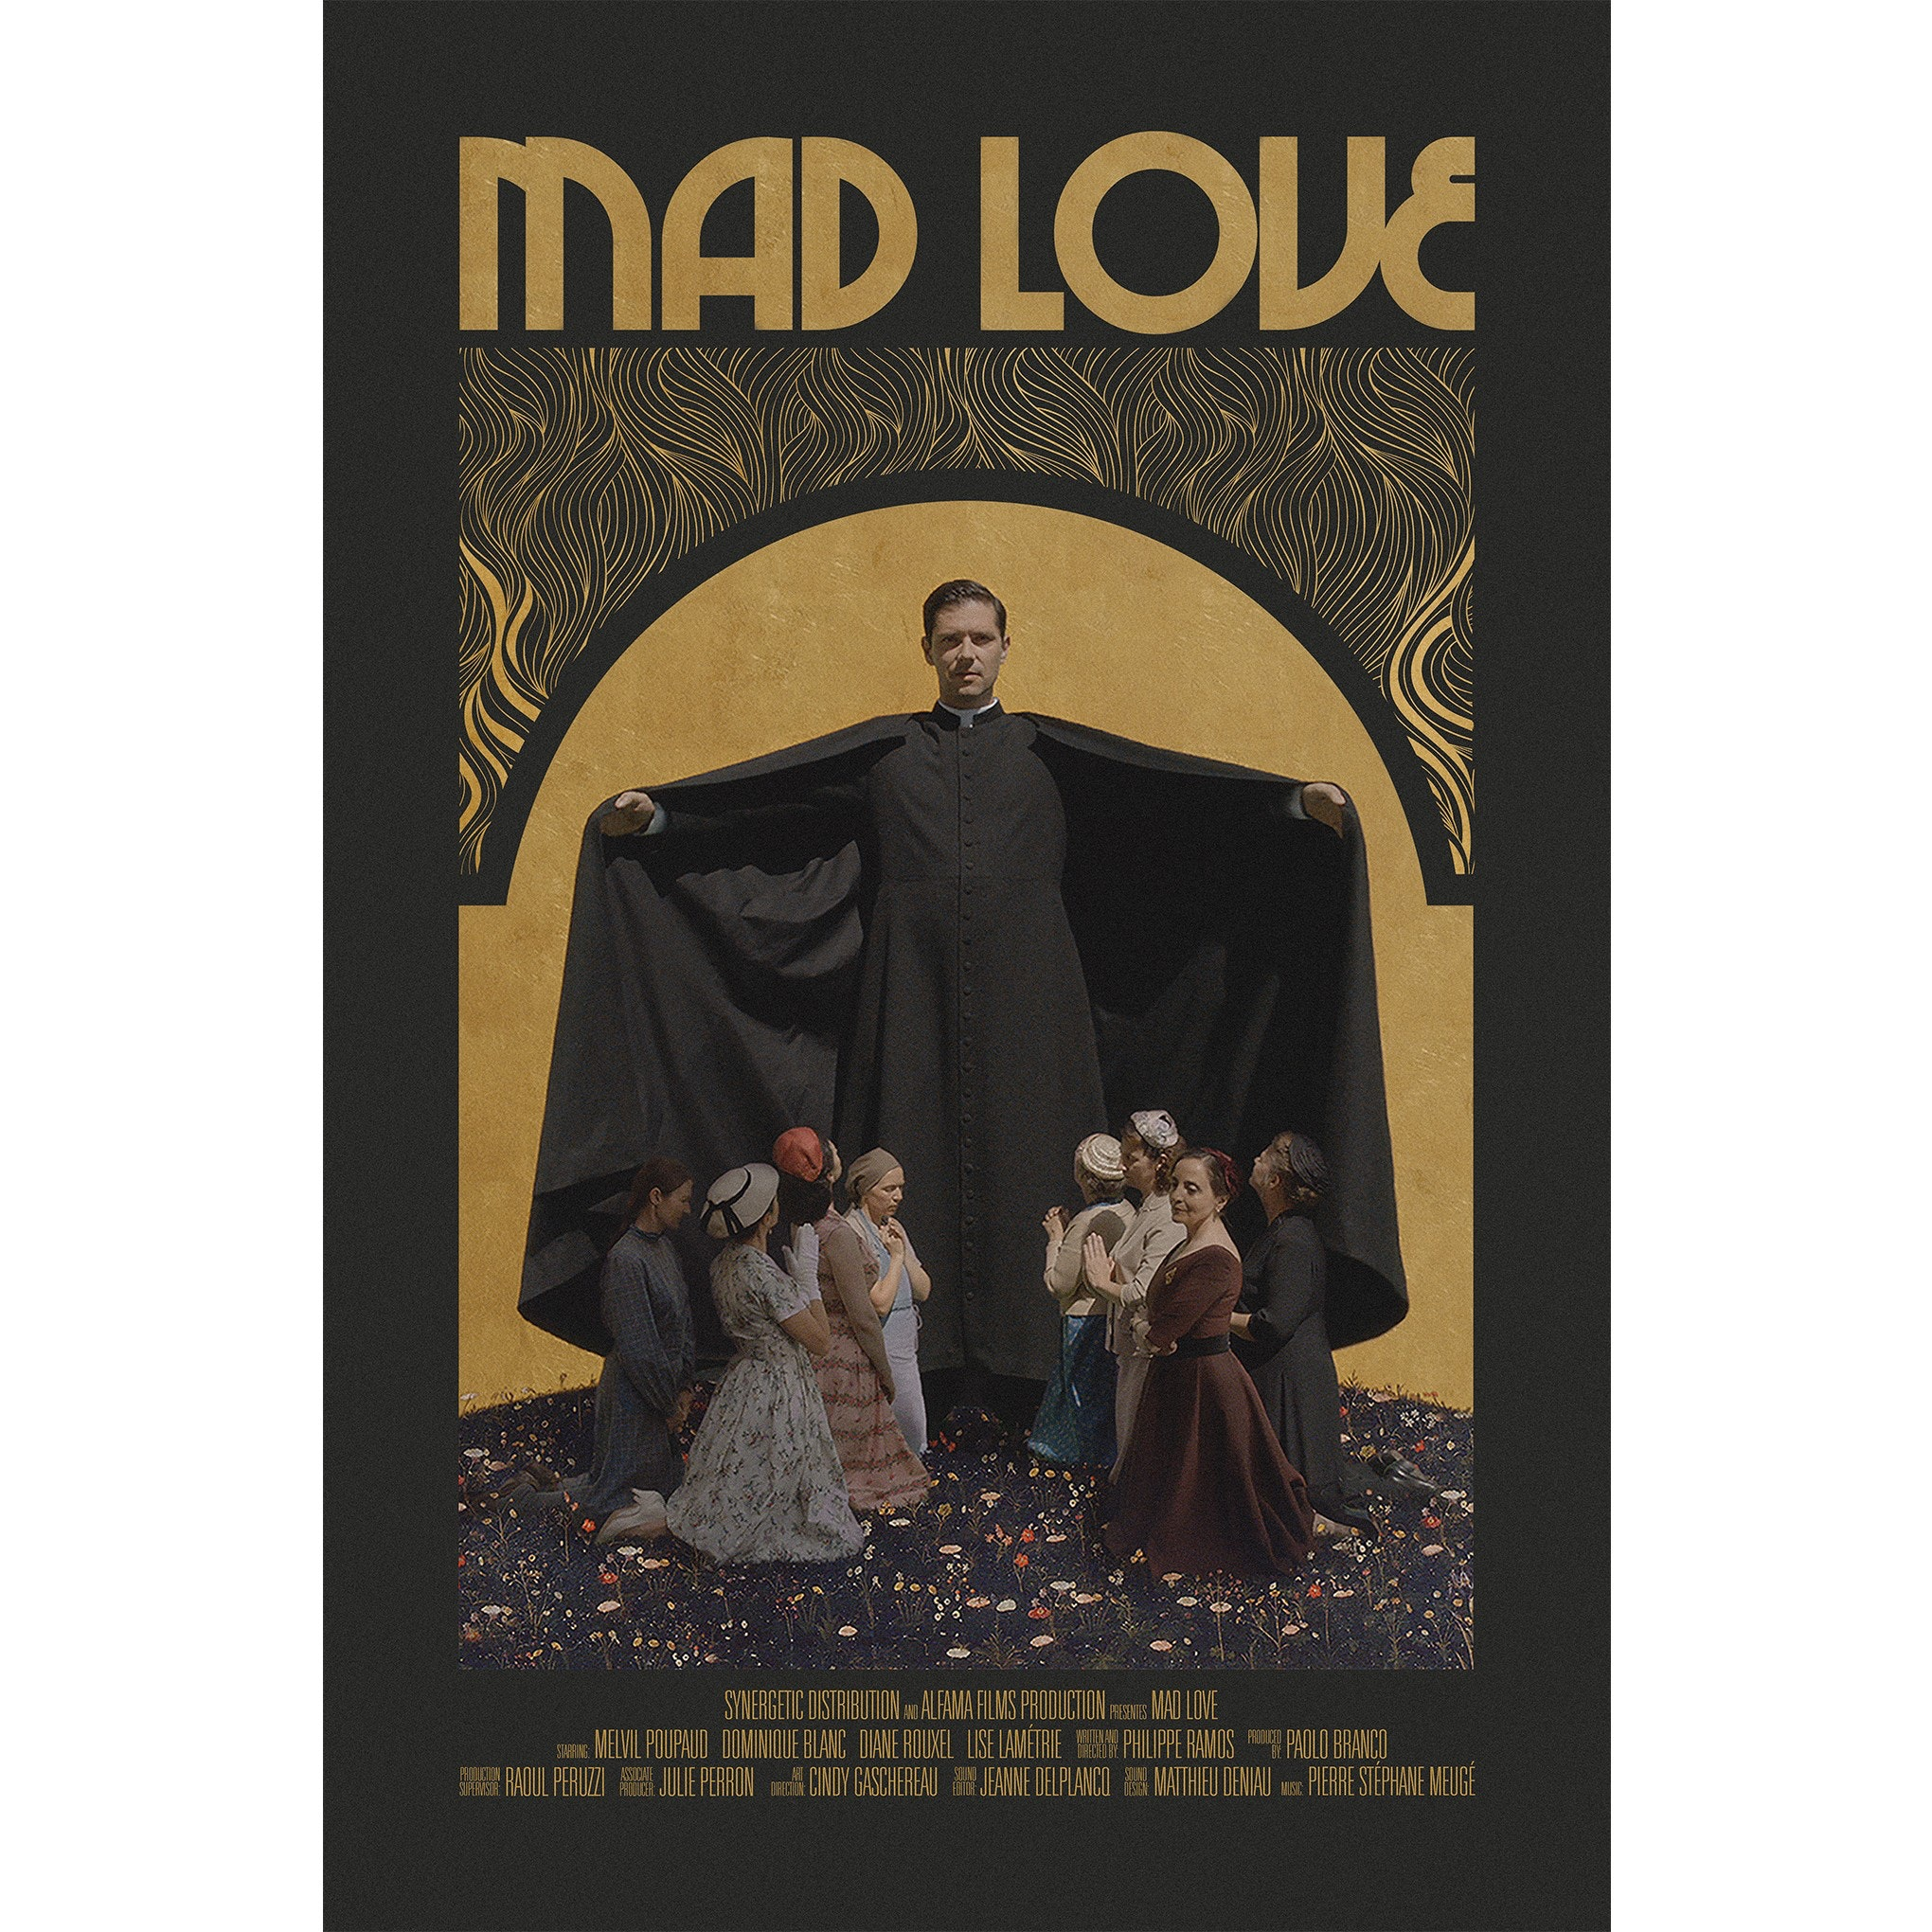 "Large male figure towering over many smaller female figures under the text ""Mad Love"""